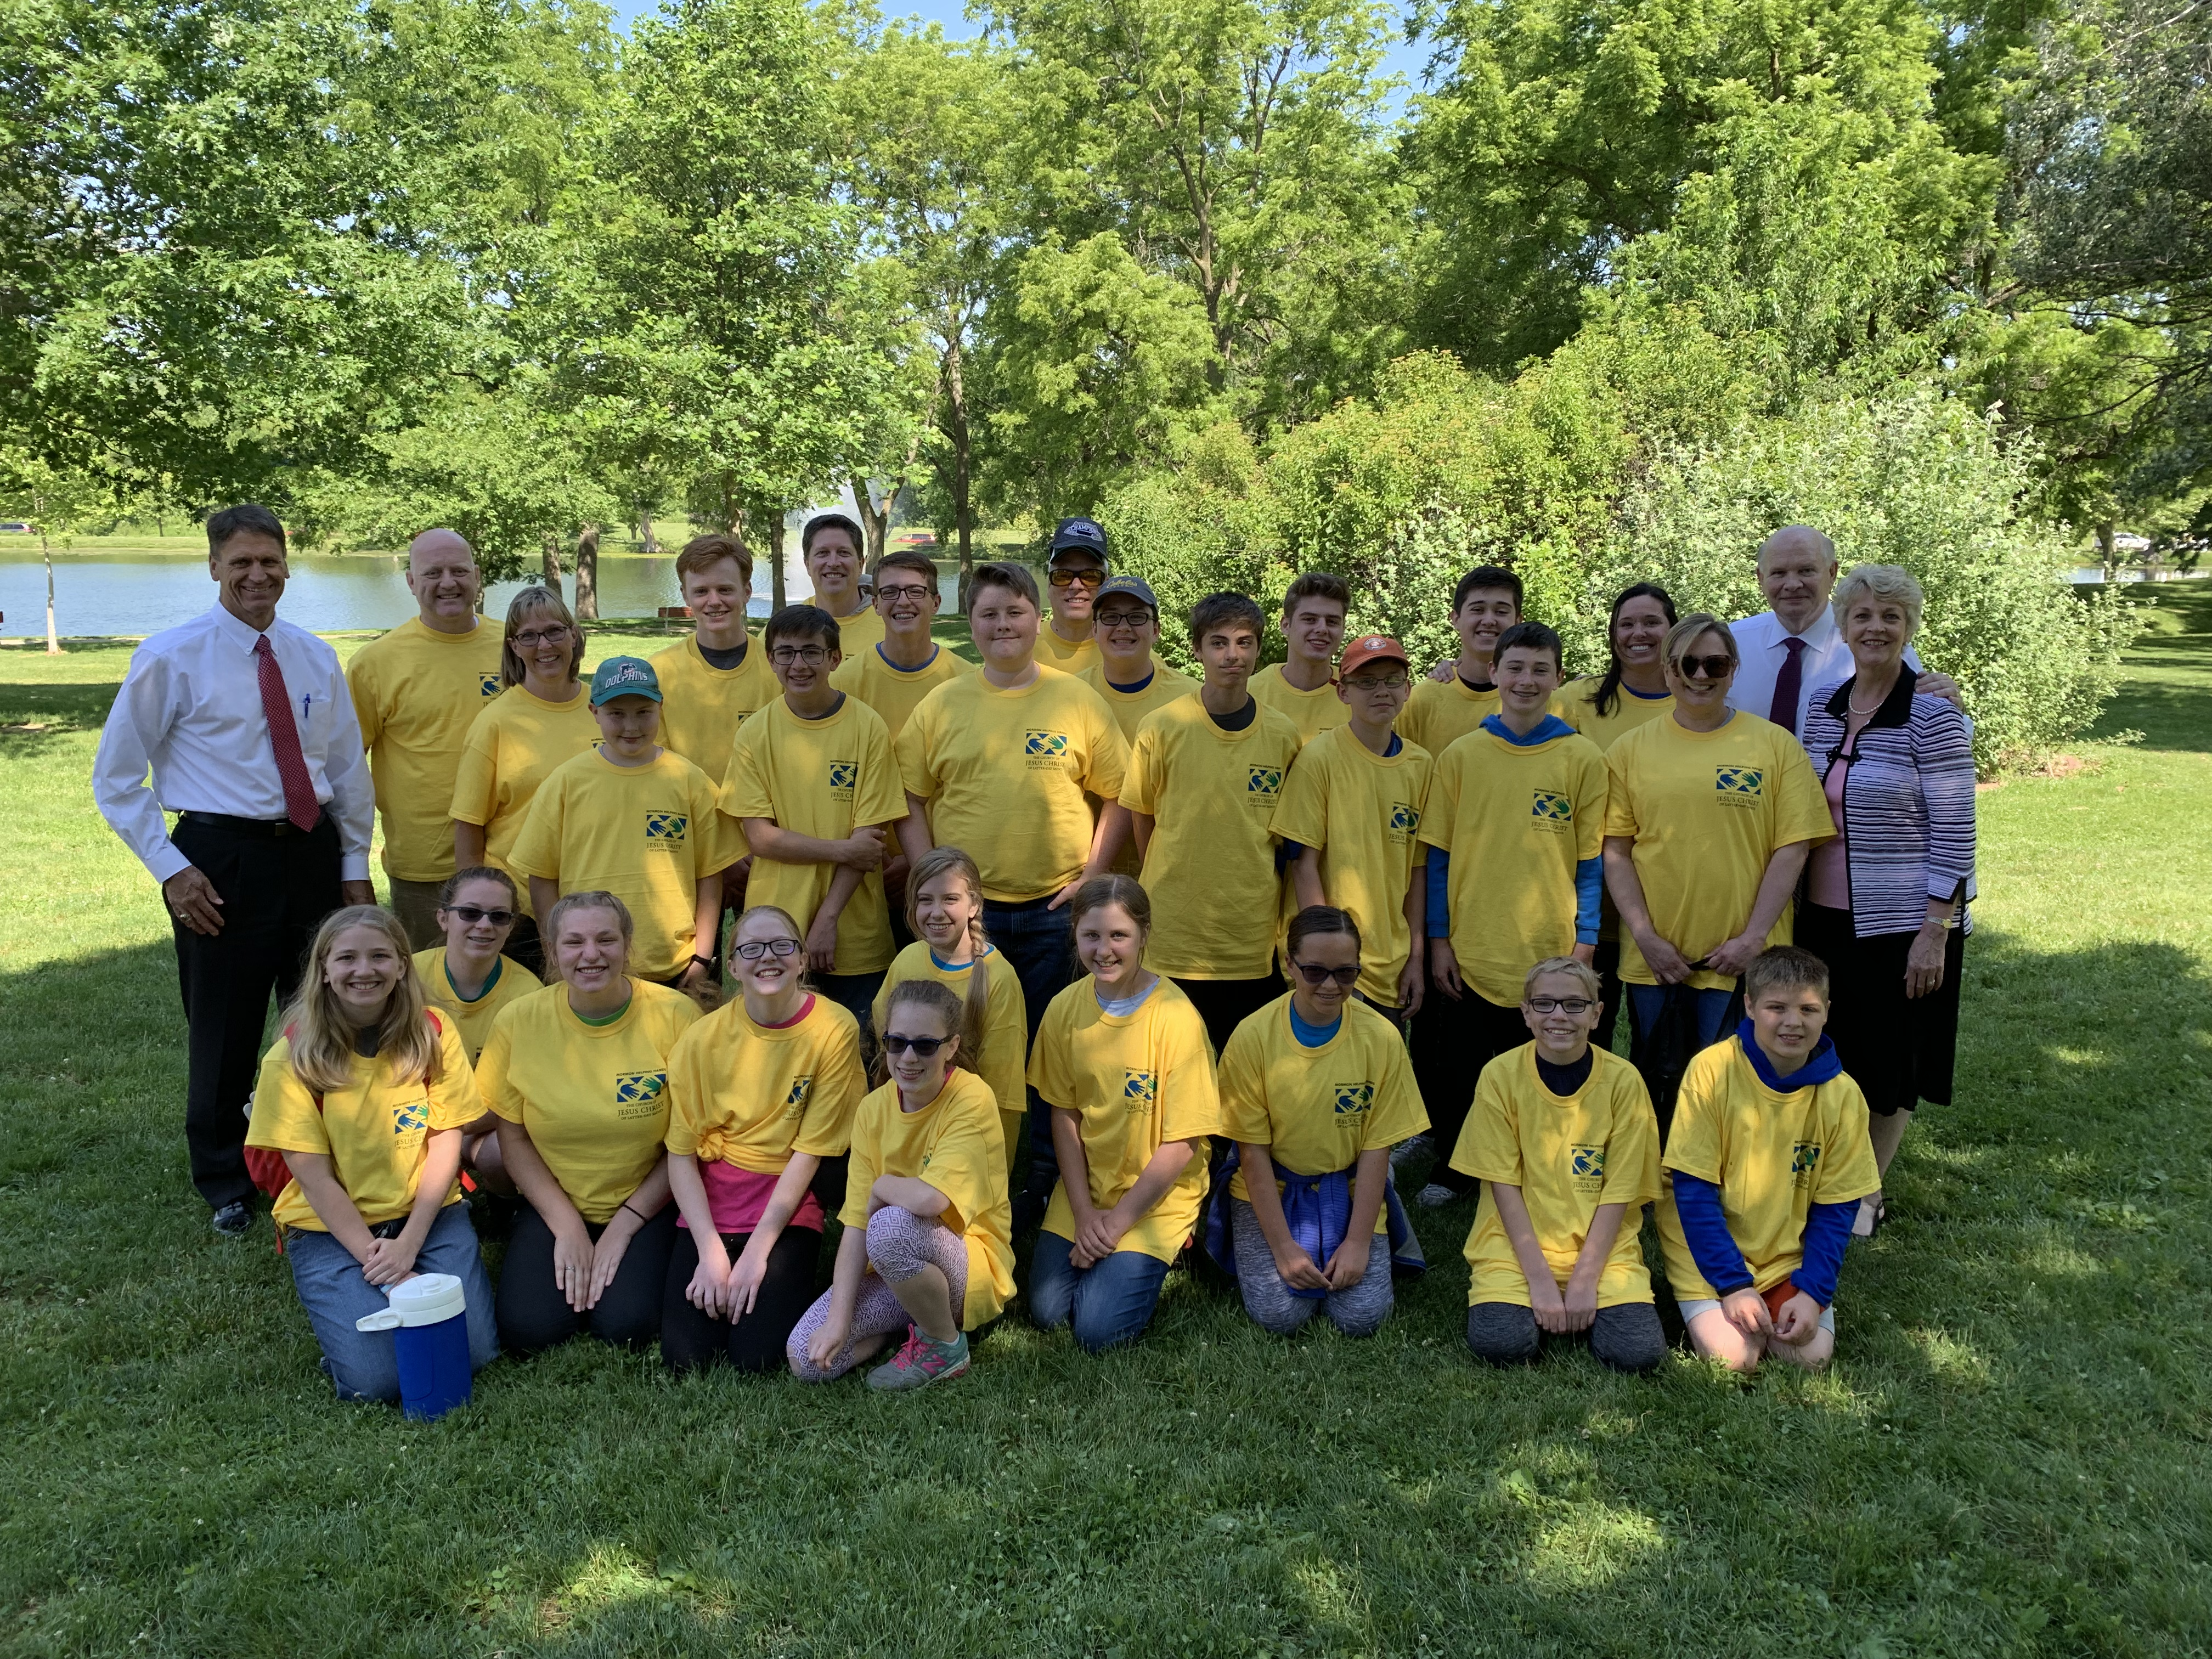 Elder Dale G. Renlund, Sister Ruth Renlund and Elder Carl B. Cook with youth and leaders who came to serve the Iowa flood victims on June 10, 2019.